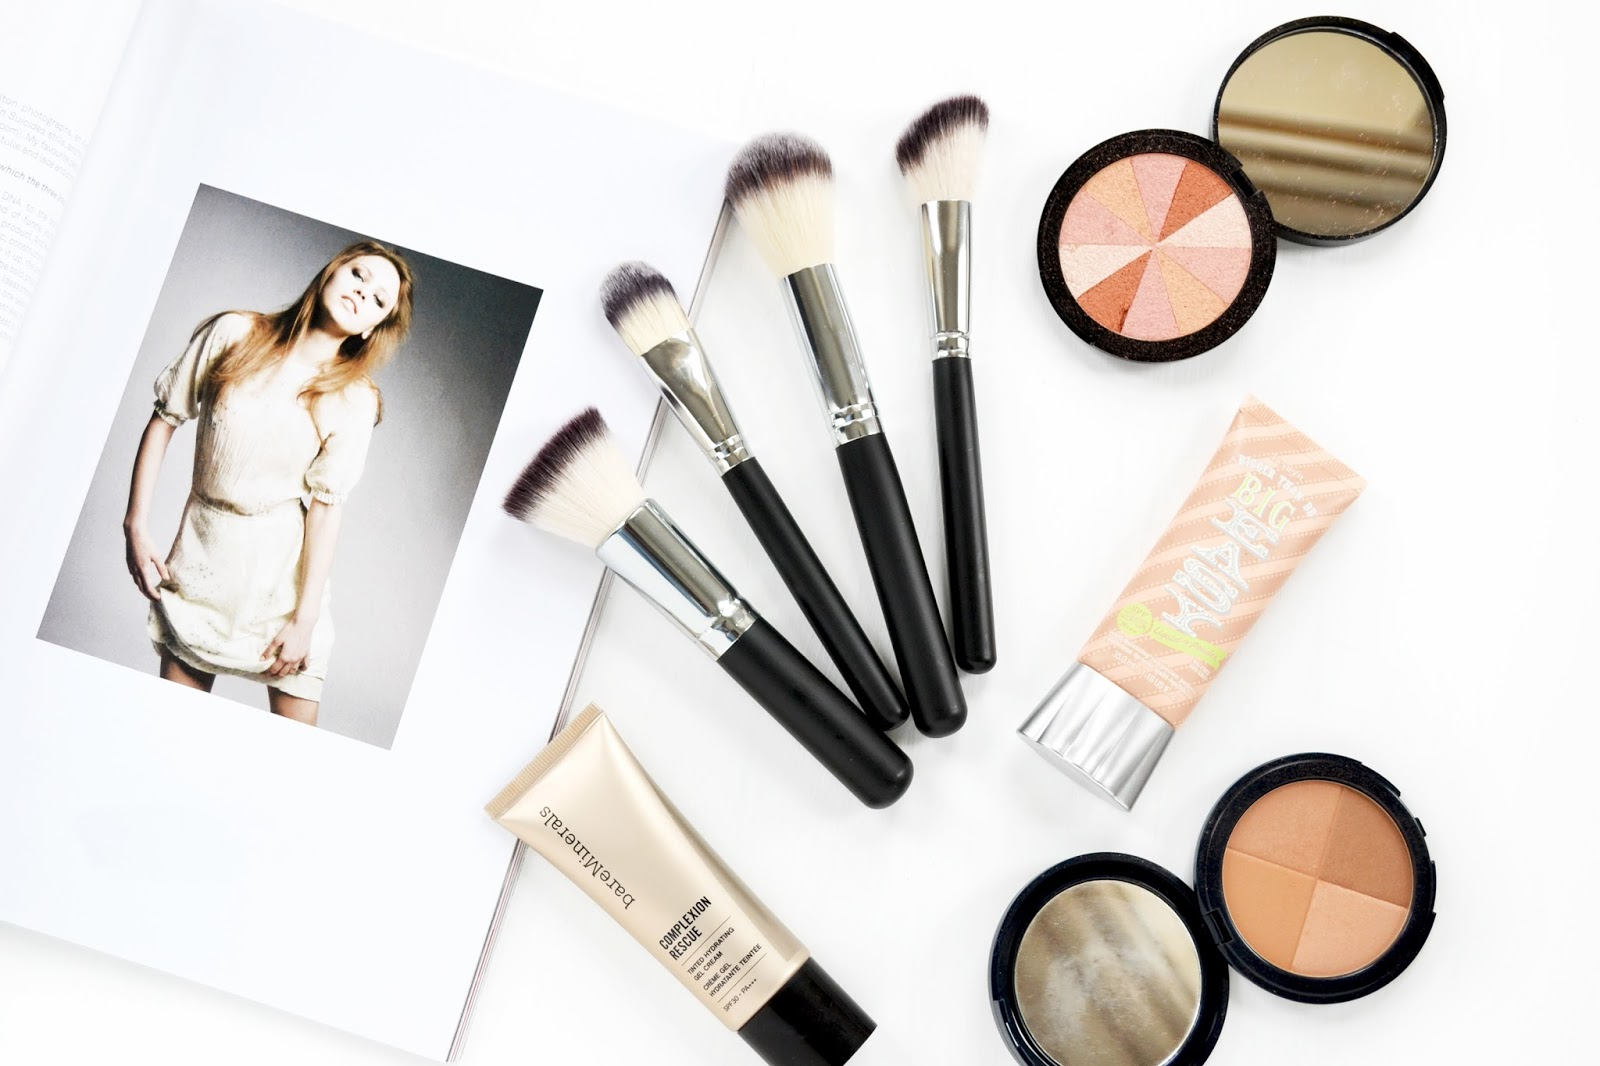 make up brushes for face and base products